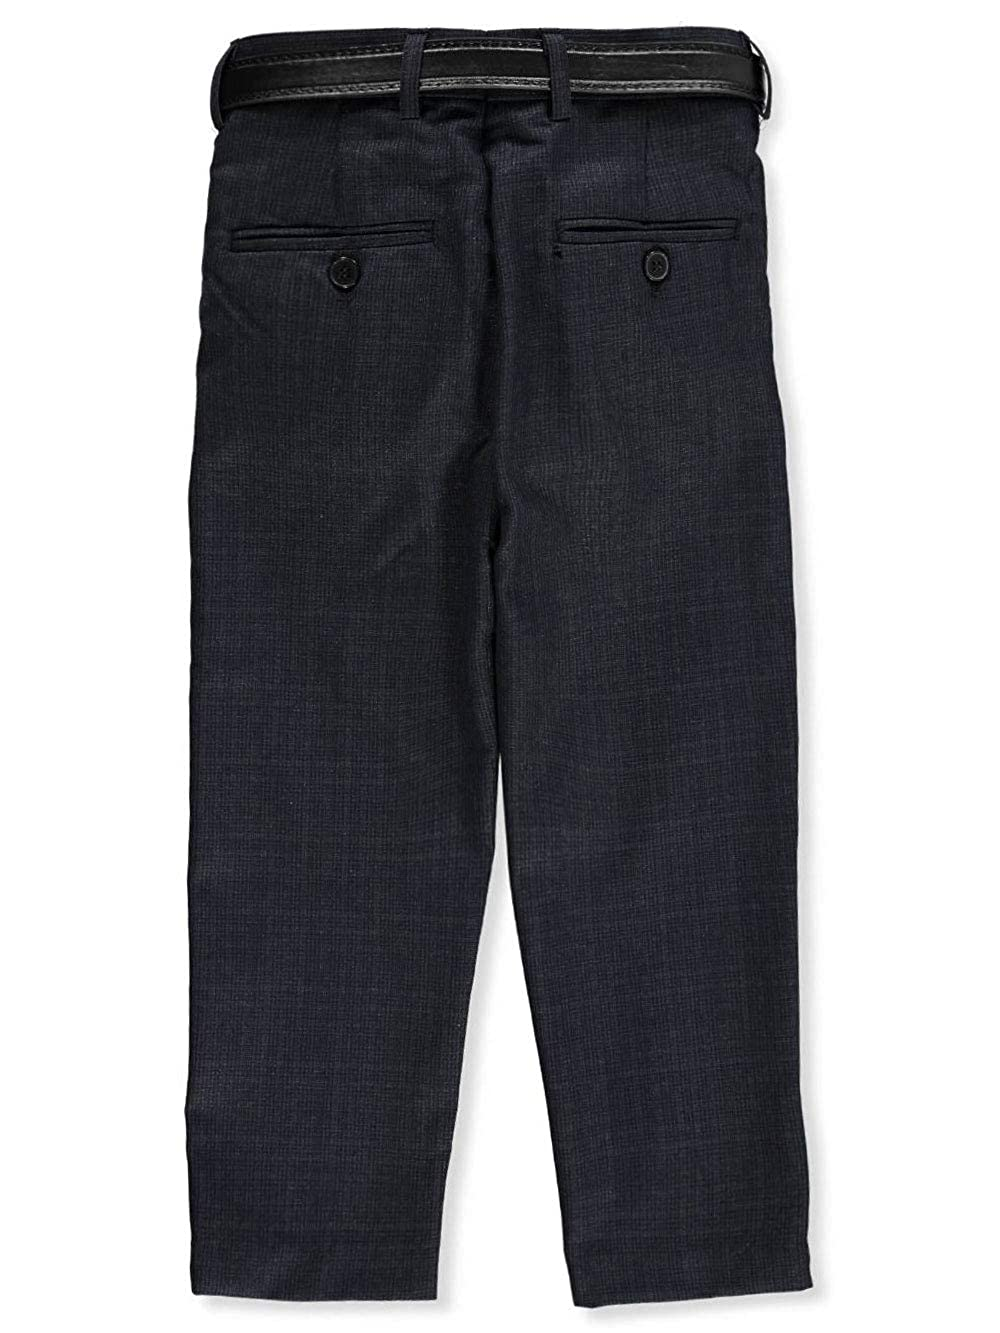 Alberto Danelli Boys Slim Belted Flat Front Dress Pants